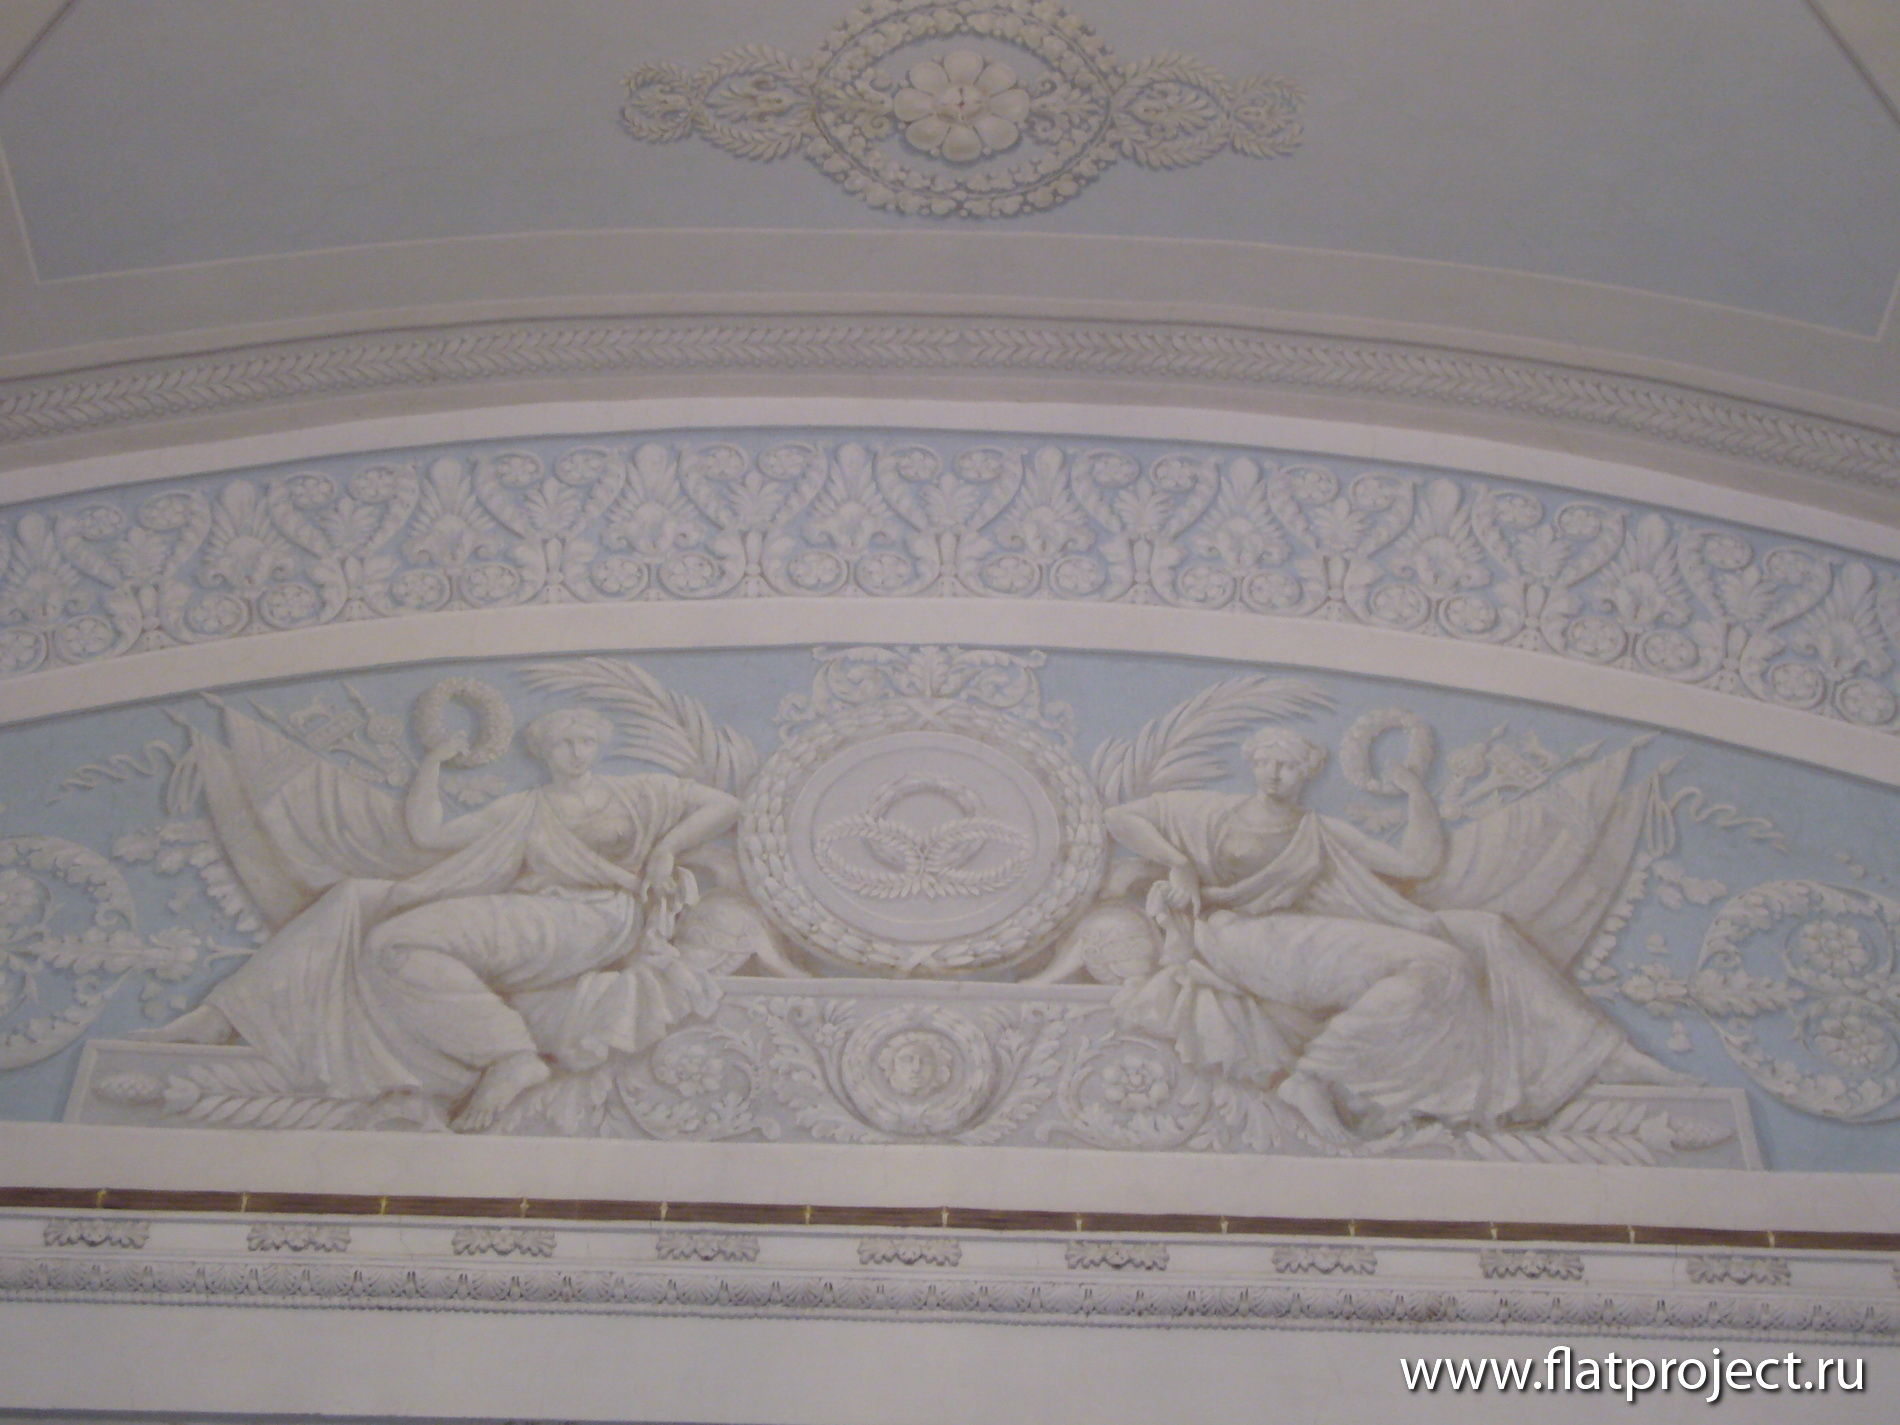 The State Russian museum interiors – photo 139